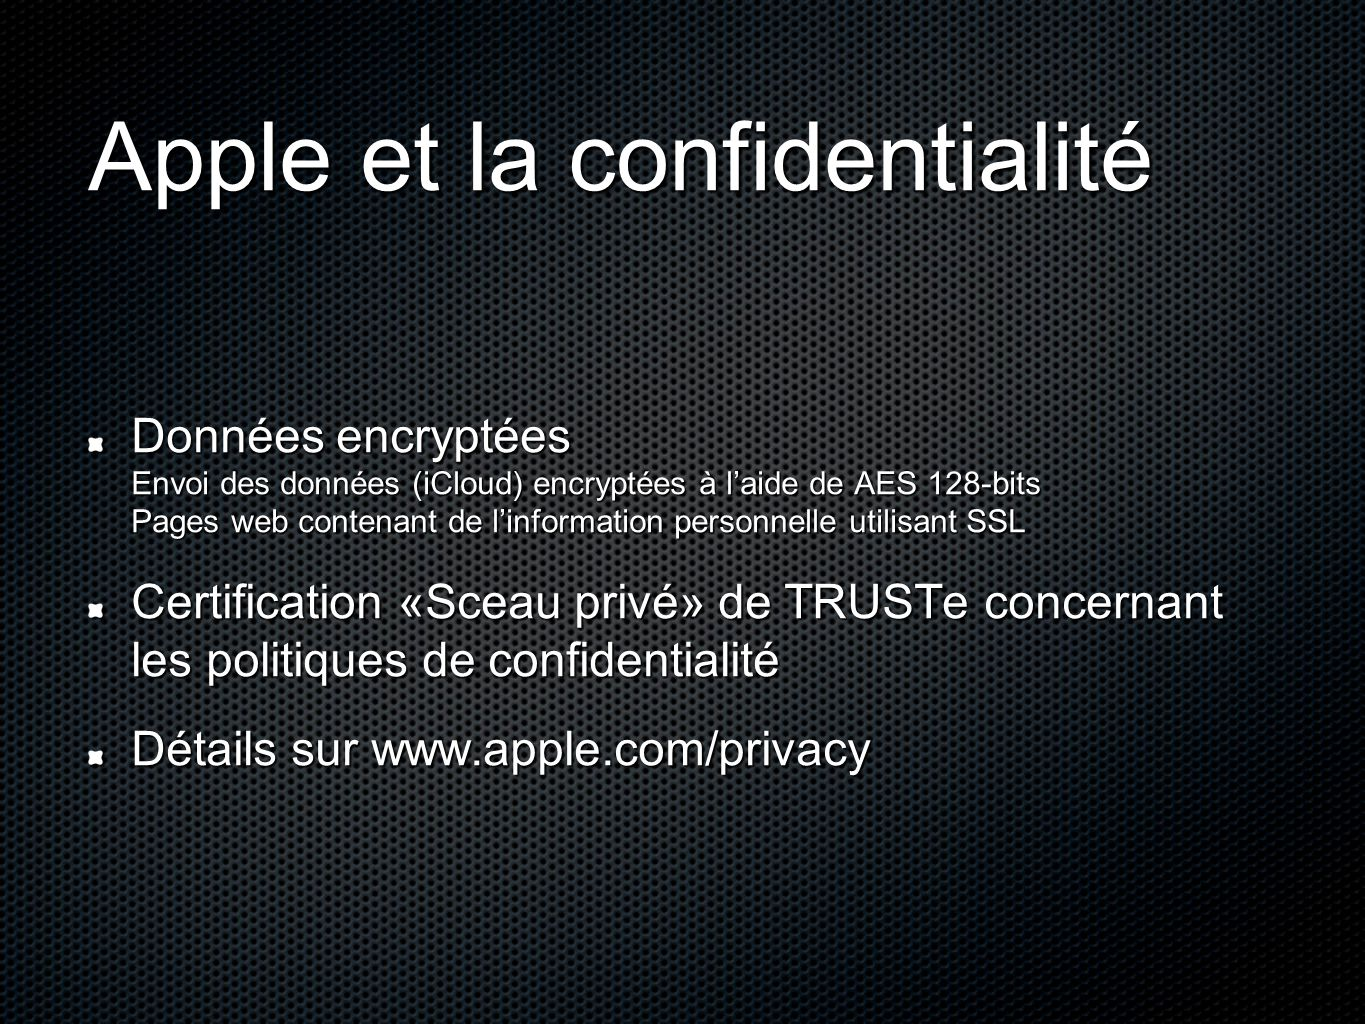 Apple et la confidentialité